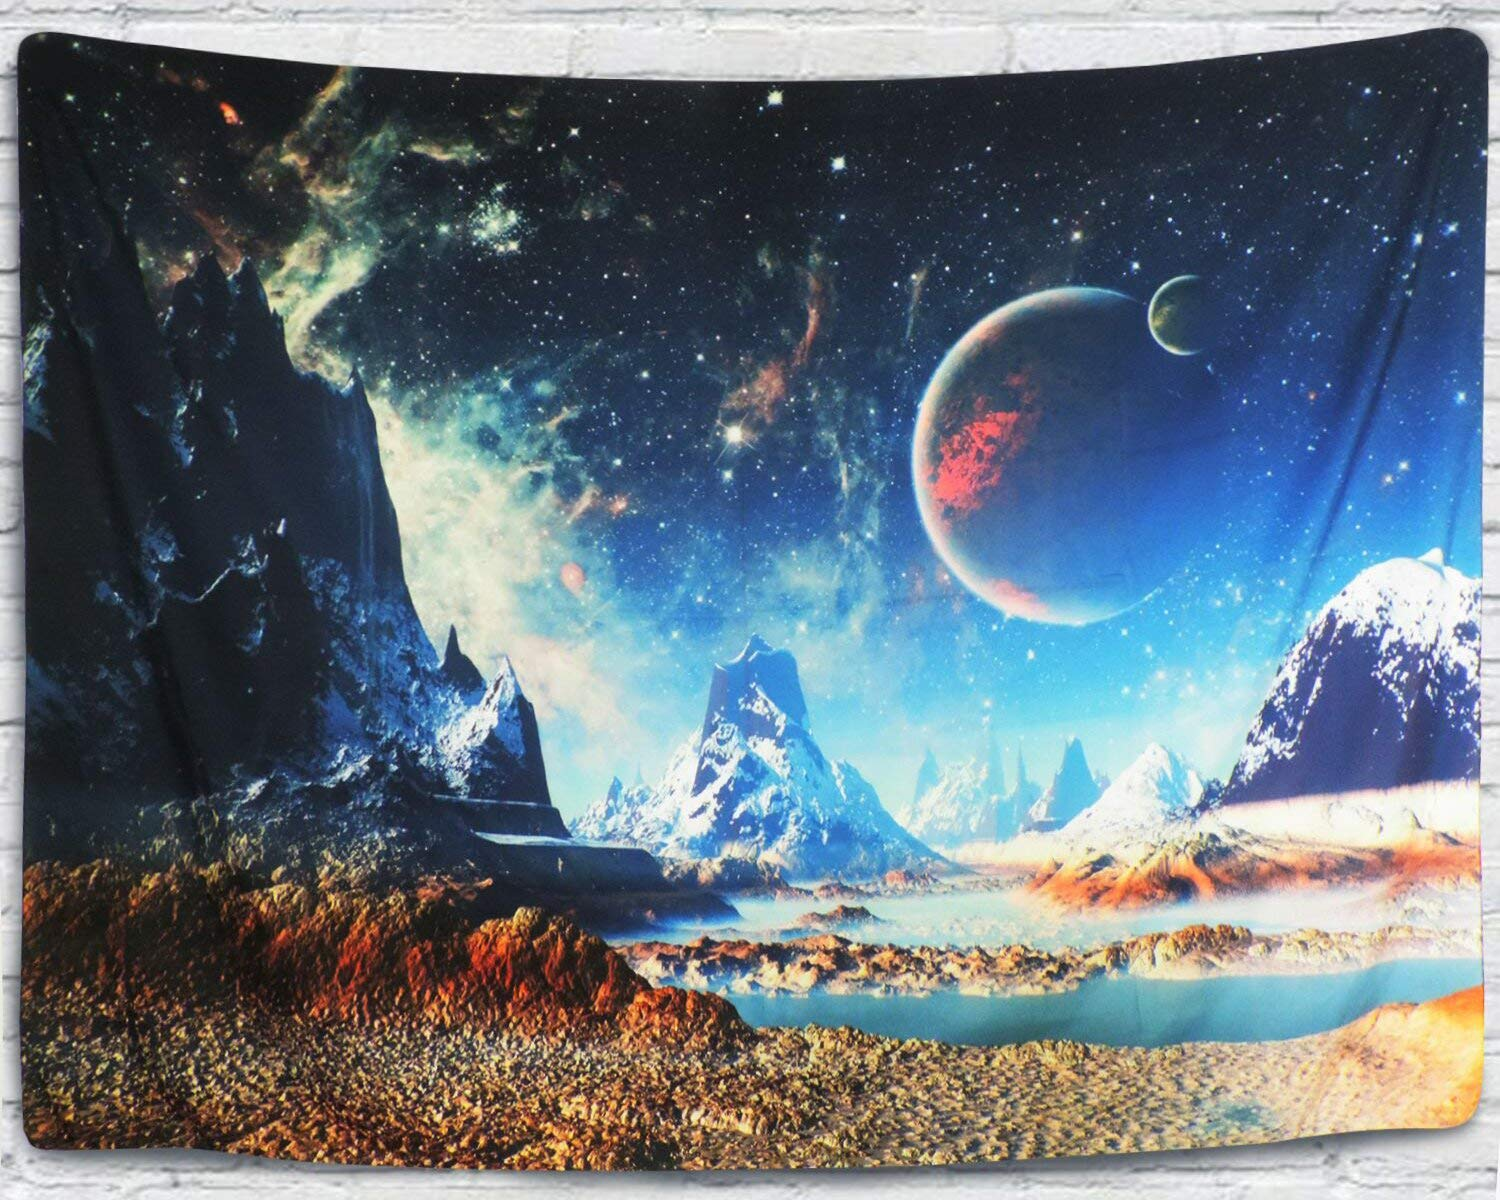 Tapestry Wall Hanging Wall Tapestry Galaxy Tapestry Planet Tapestry Psychedelic Tapestry Vintage Tapestry Home Decor